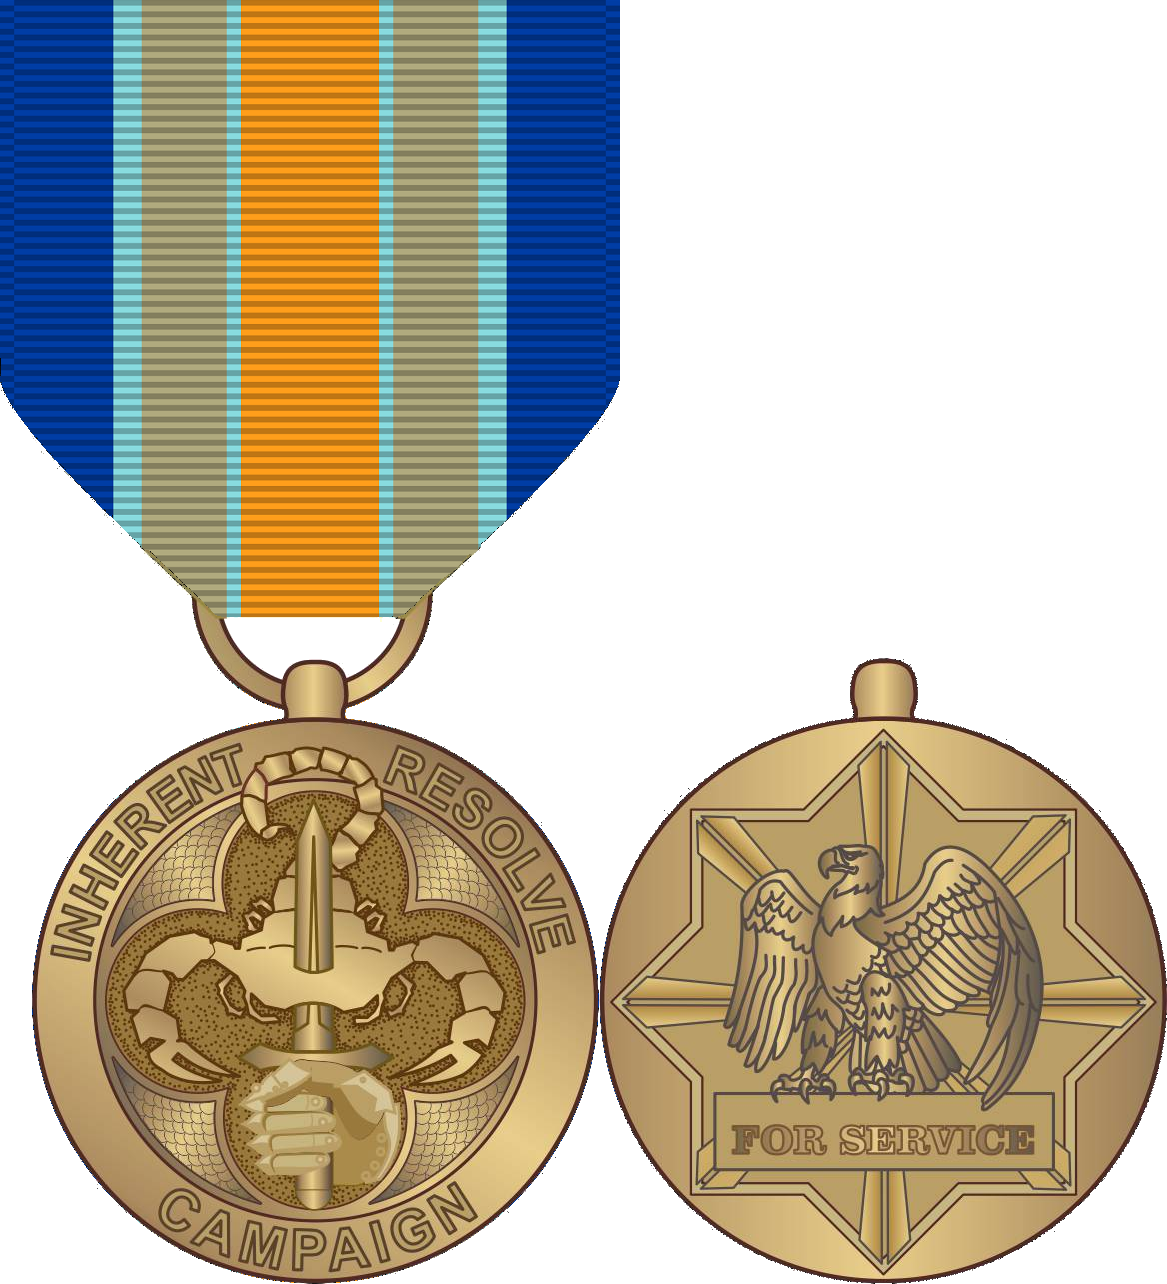 Medals drawing bronze. Inherent resolve campaign medal